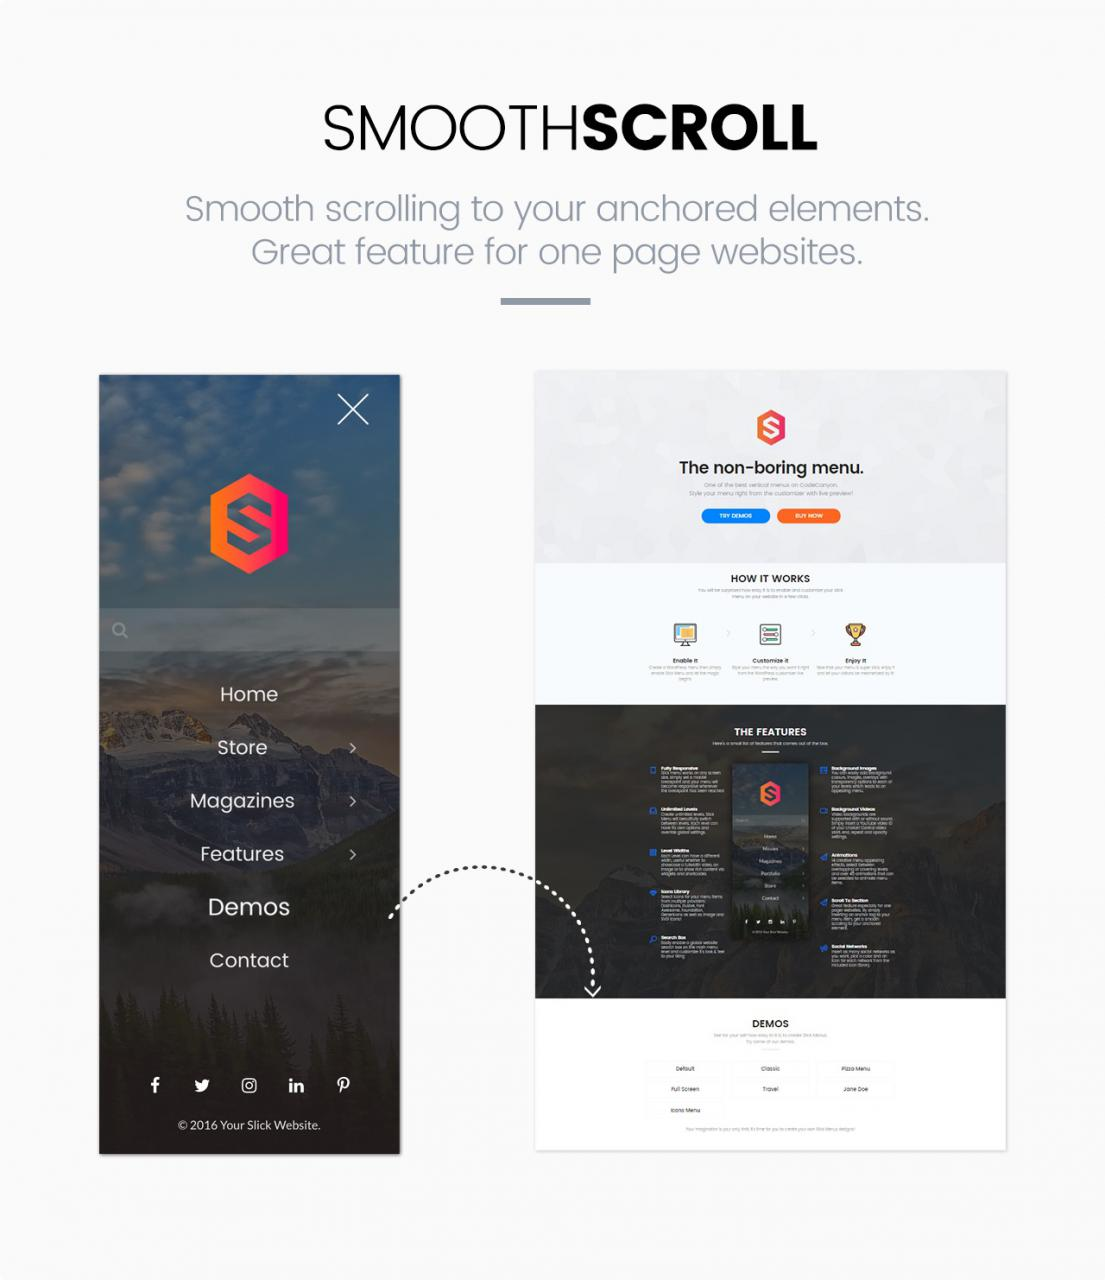 Slick Menu - Smooth Scroll to anchored elements